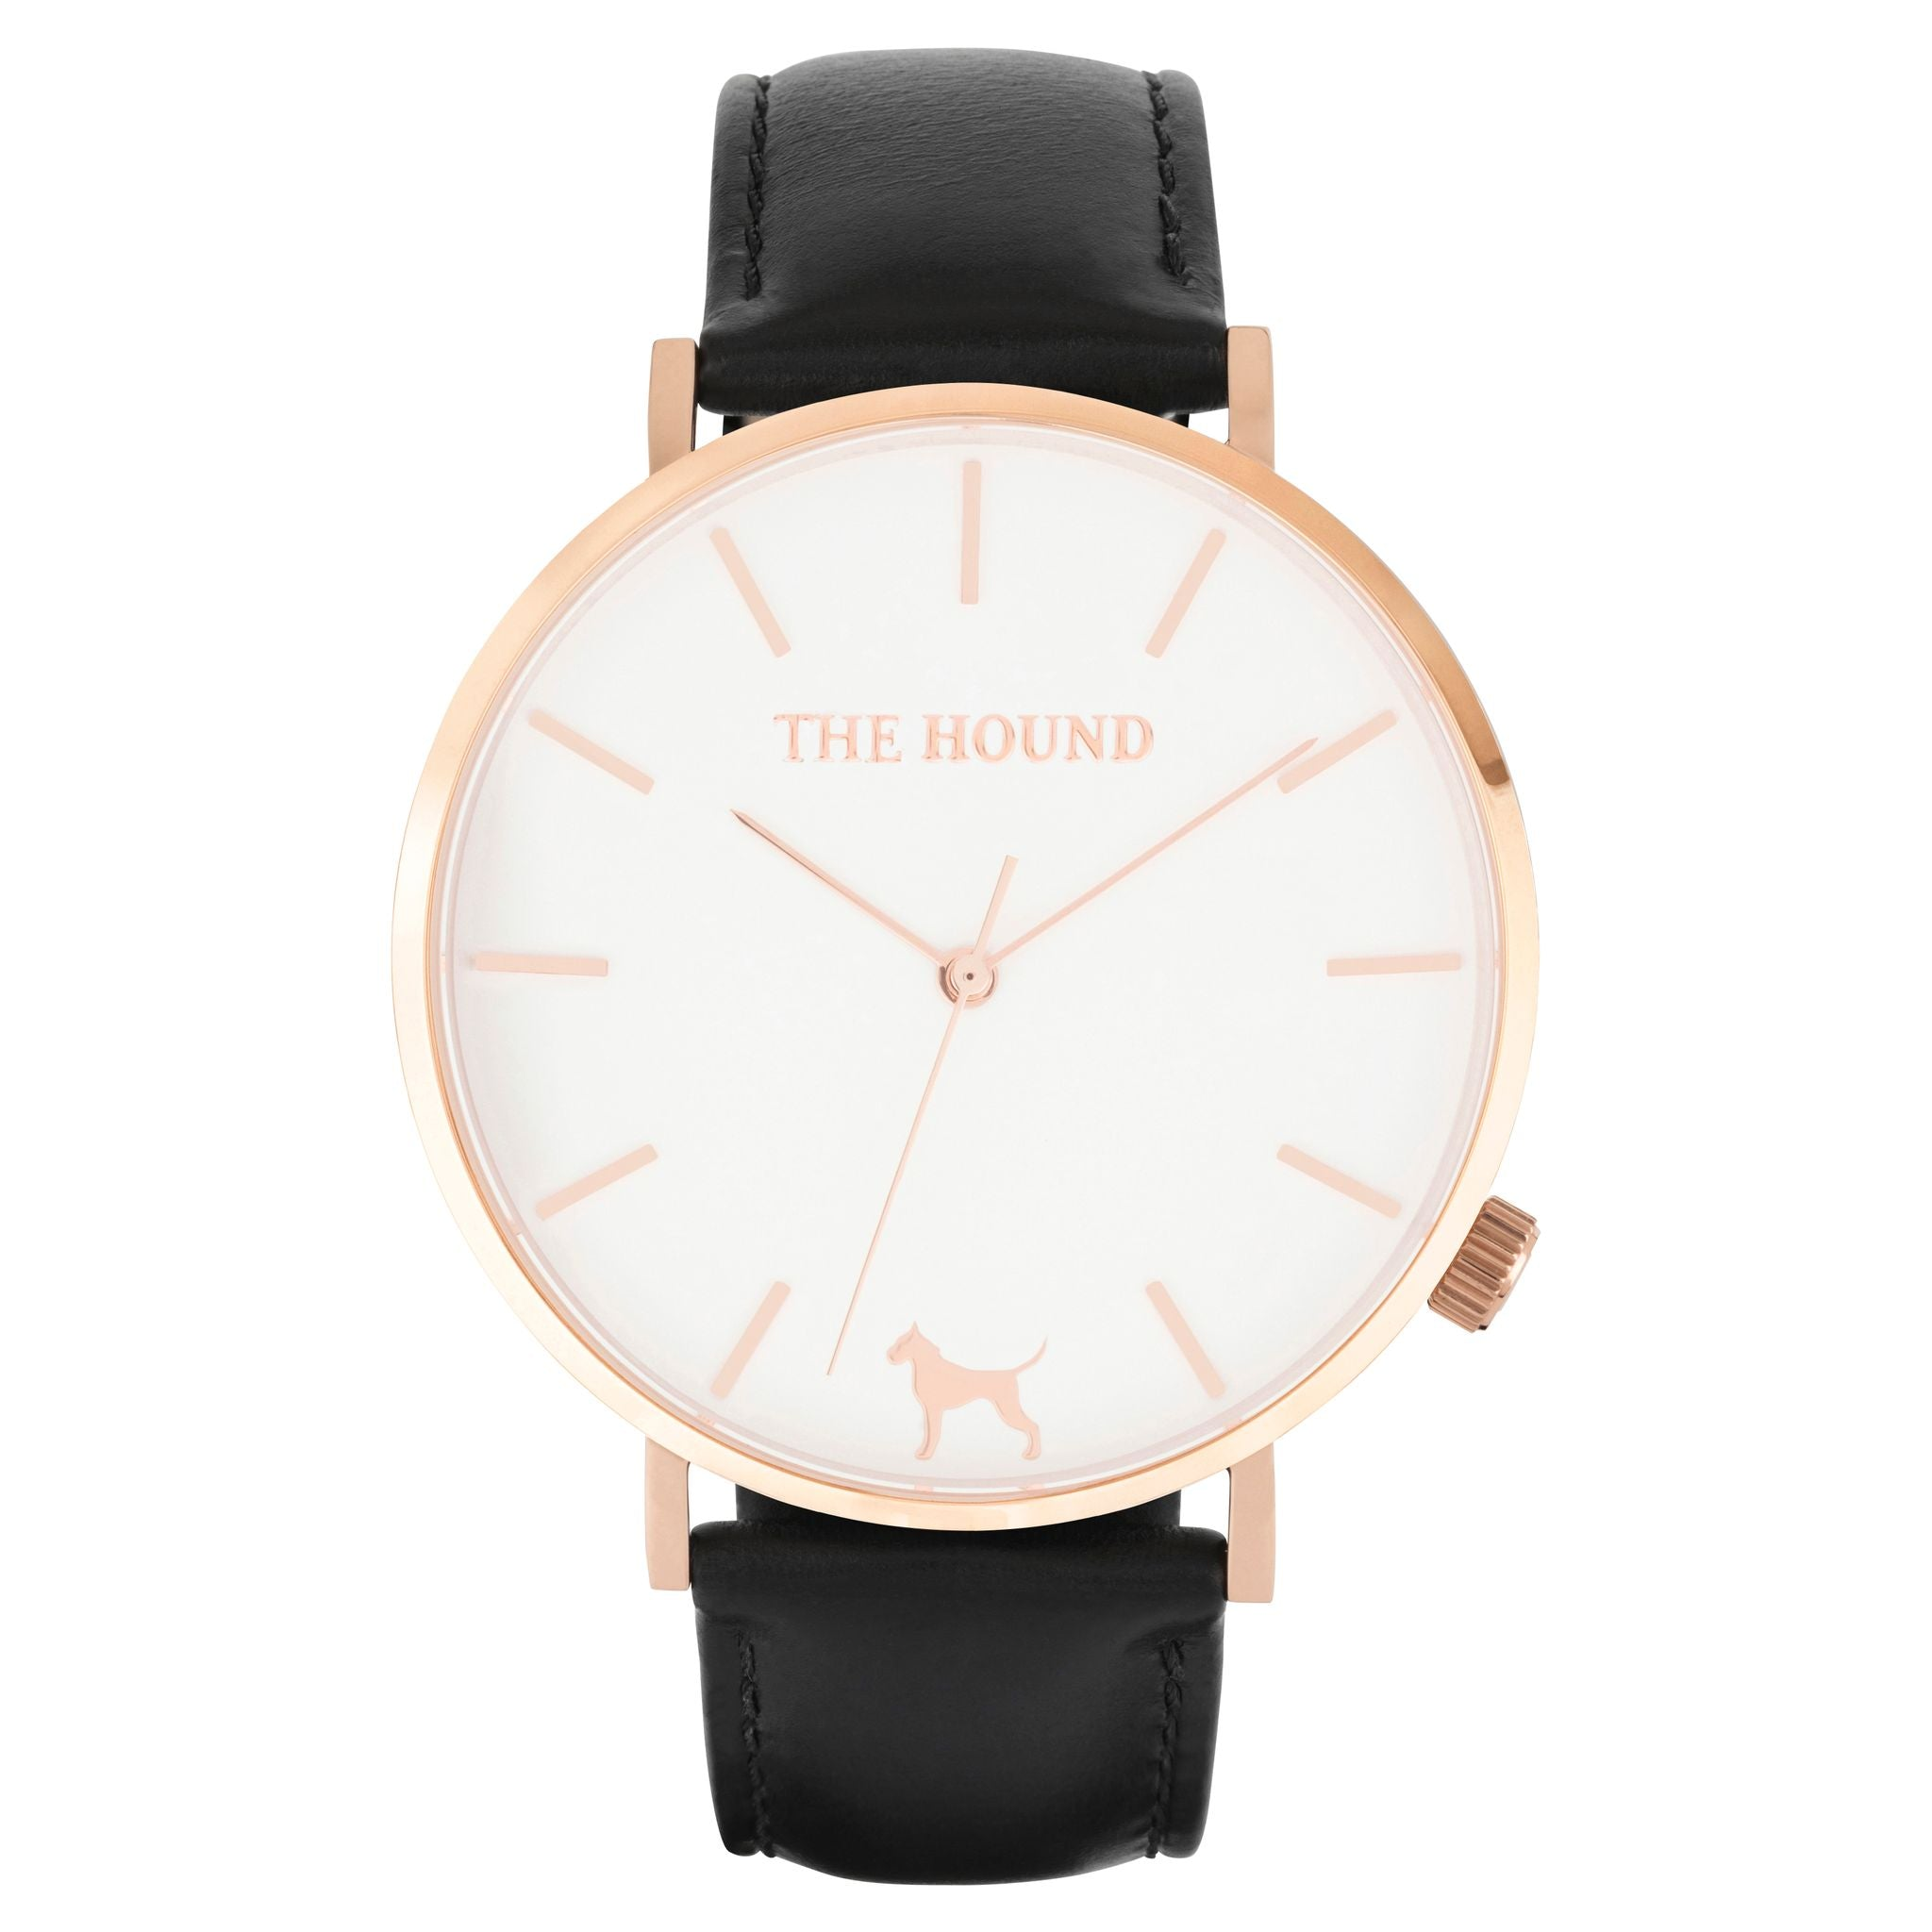 Rose gold & white face watch with black leather